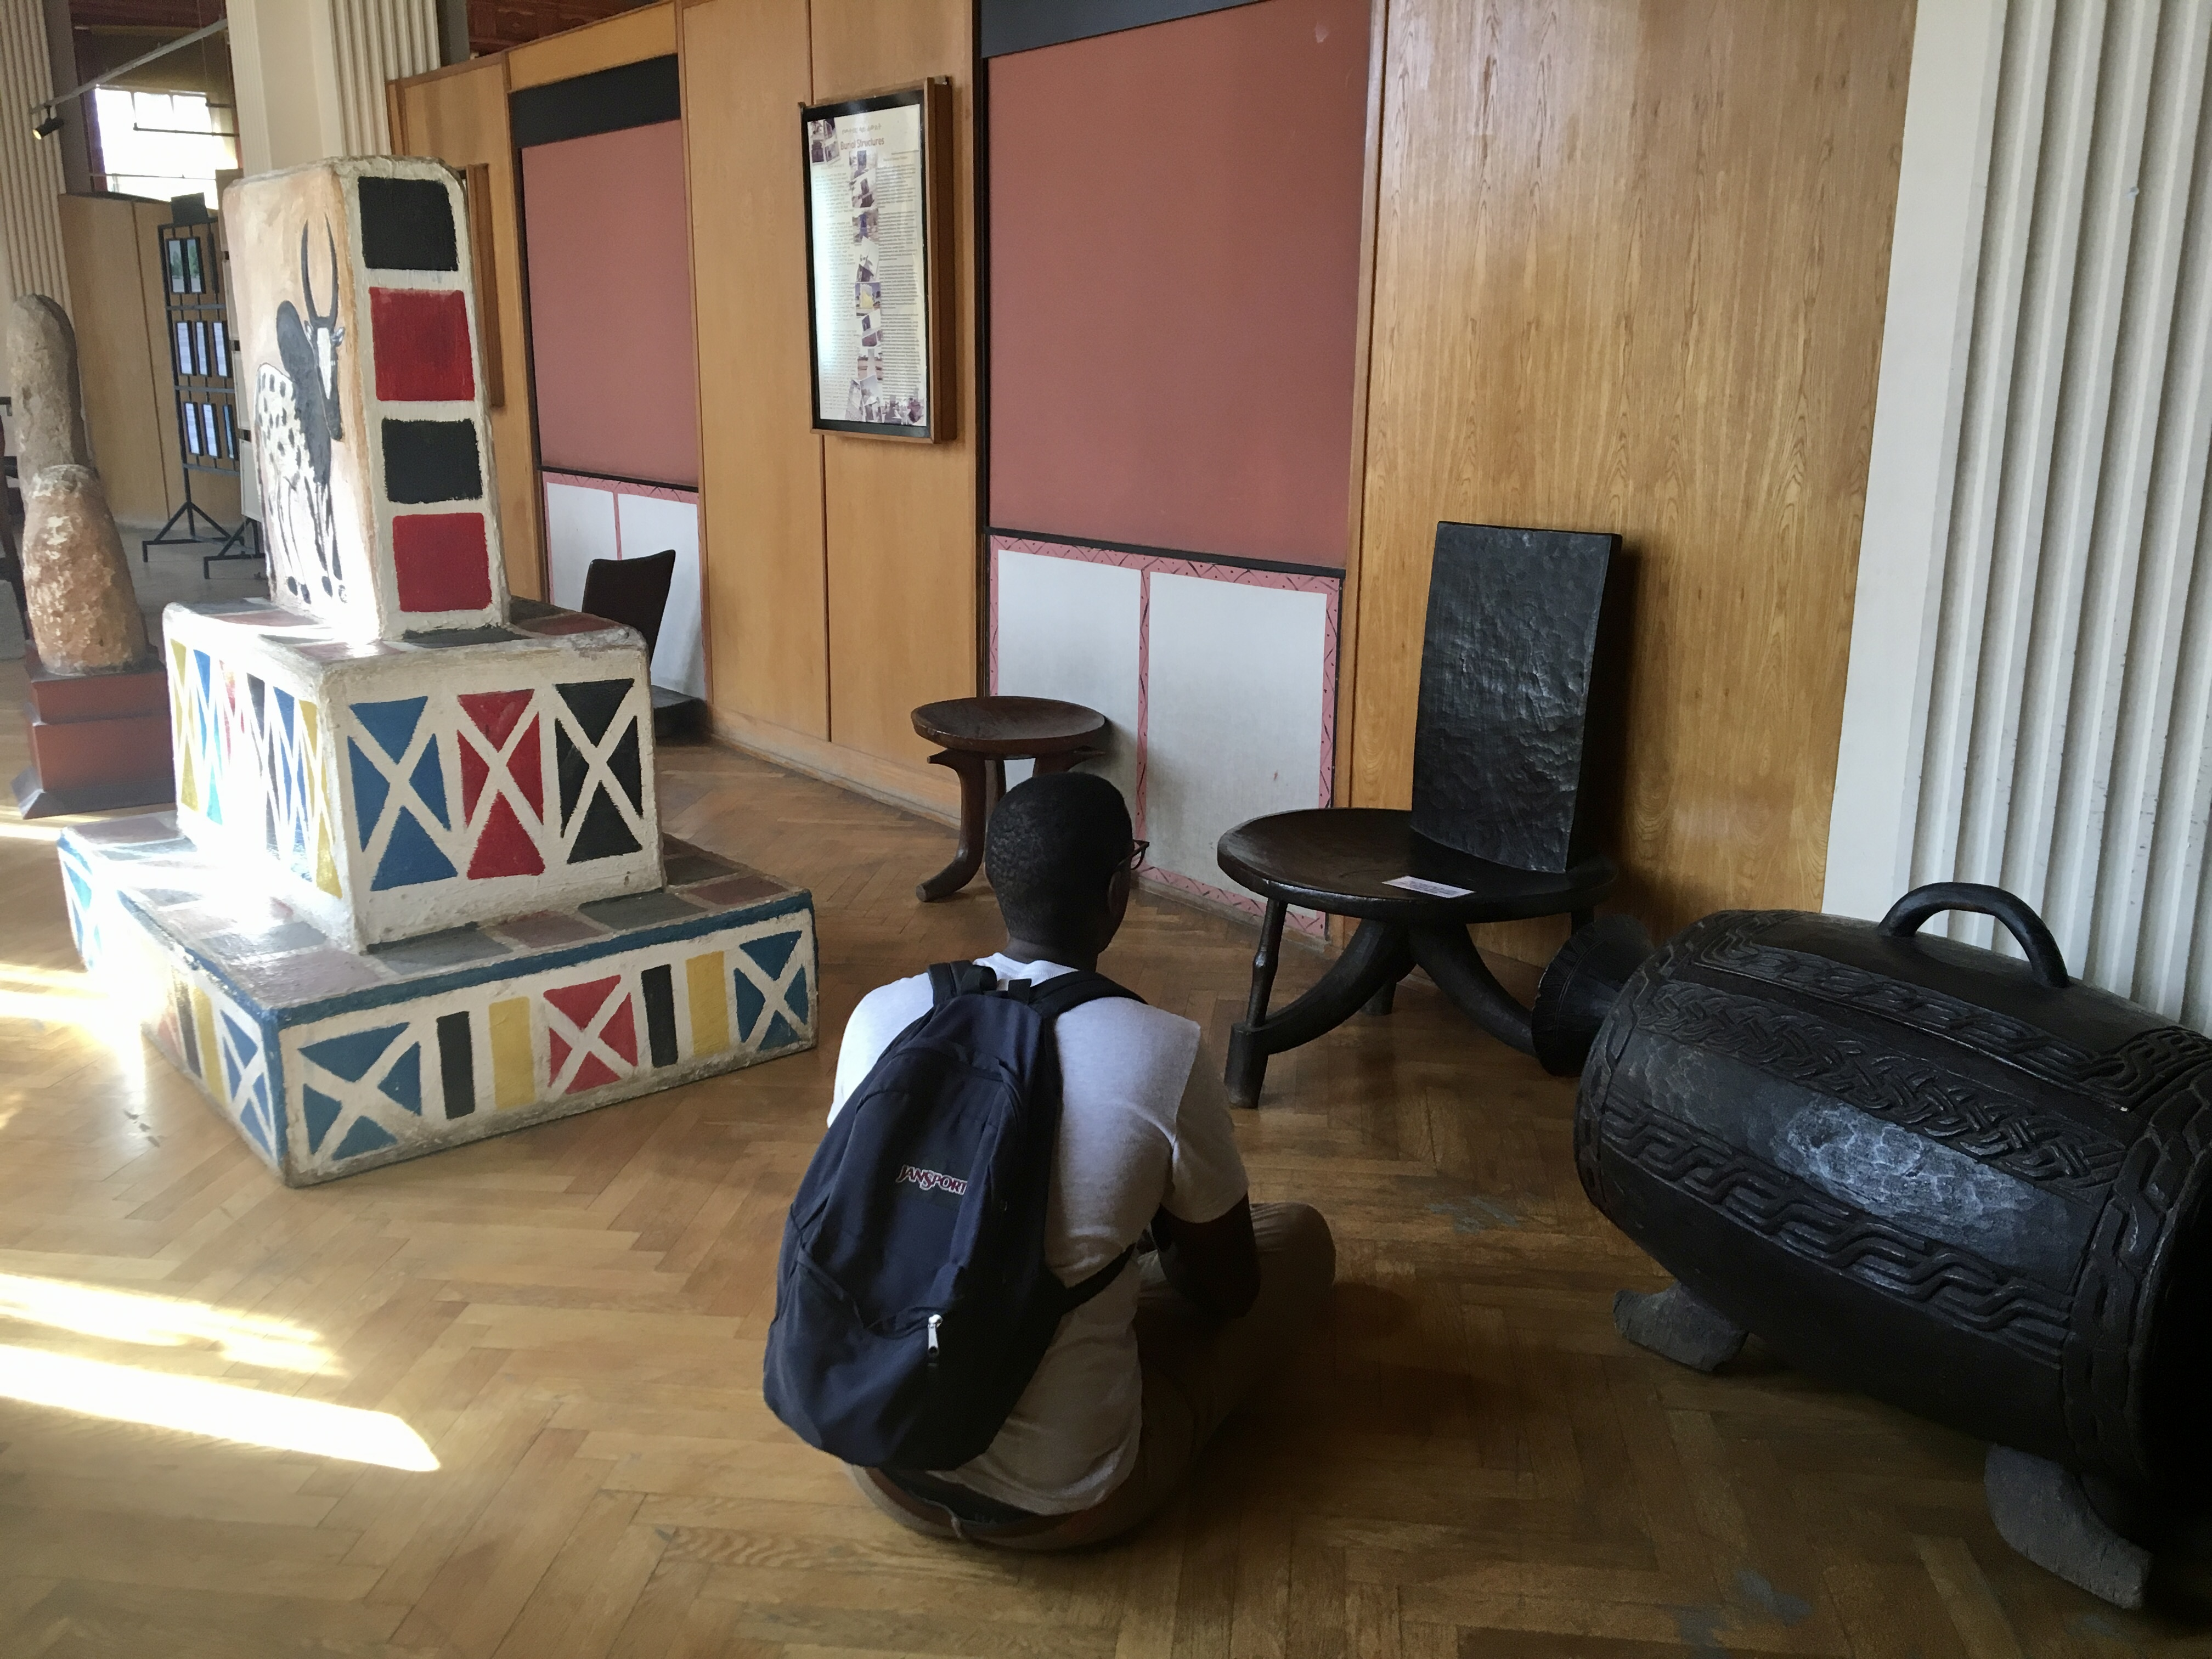 Robell sitting on the floor in a museum in Ethiopia to study a black, locally made chair. He is surrounded by sculptures.